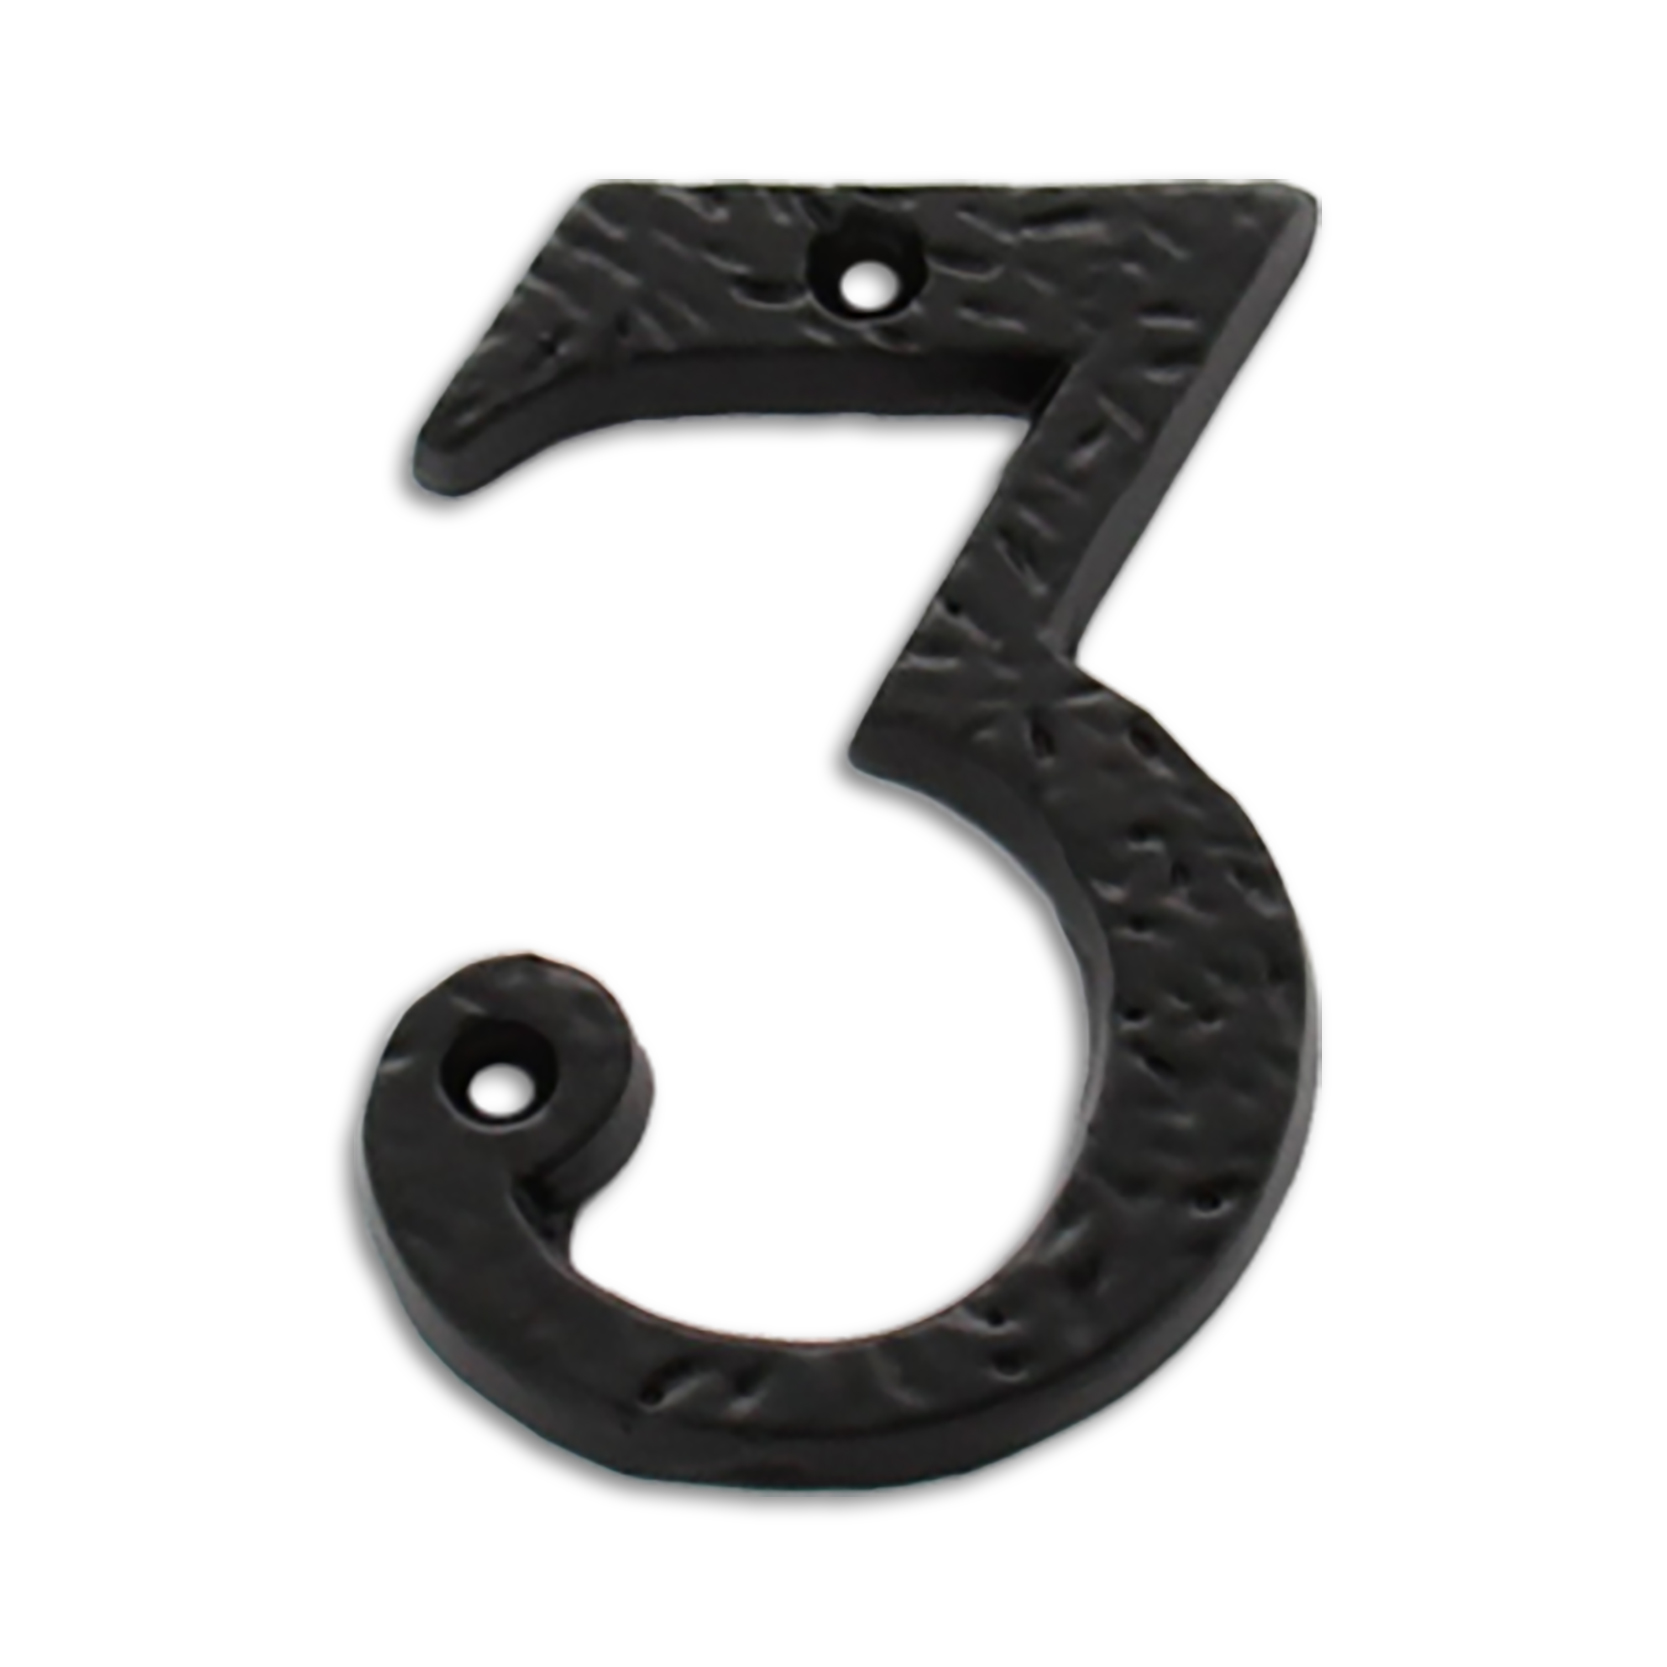 Exceptionnel 3 Inch Iron Metal House Number In Iron Black Finish   Metal Number 3